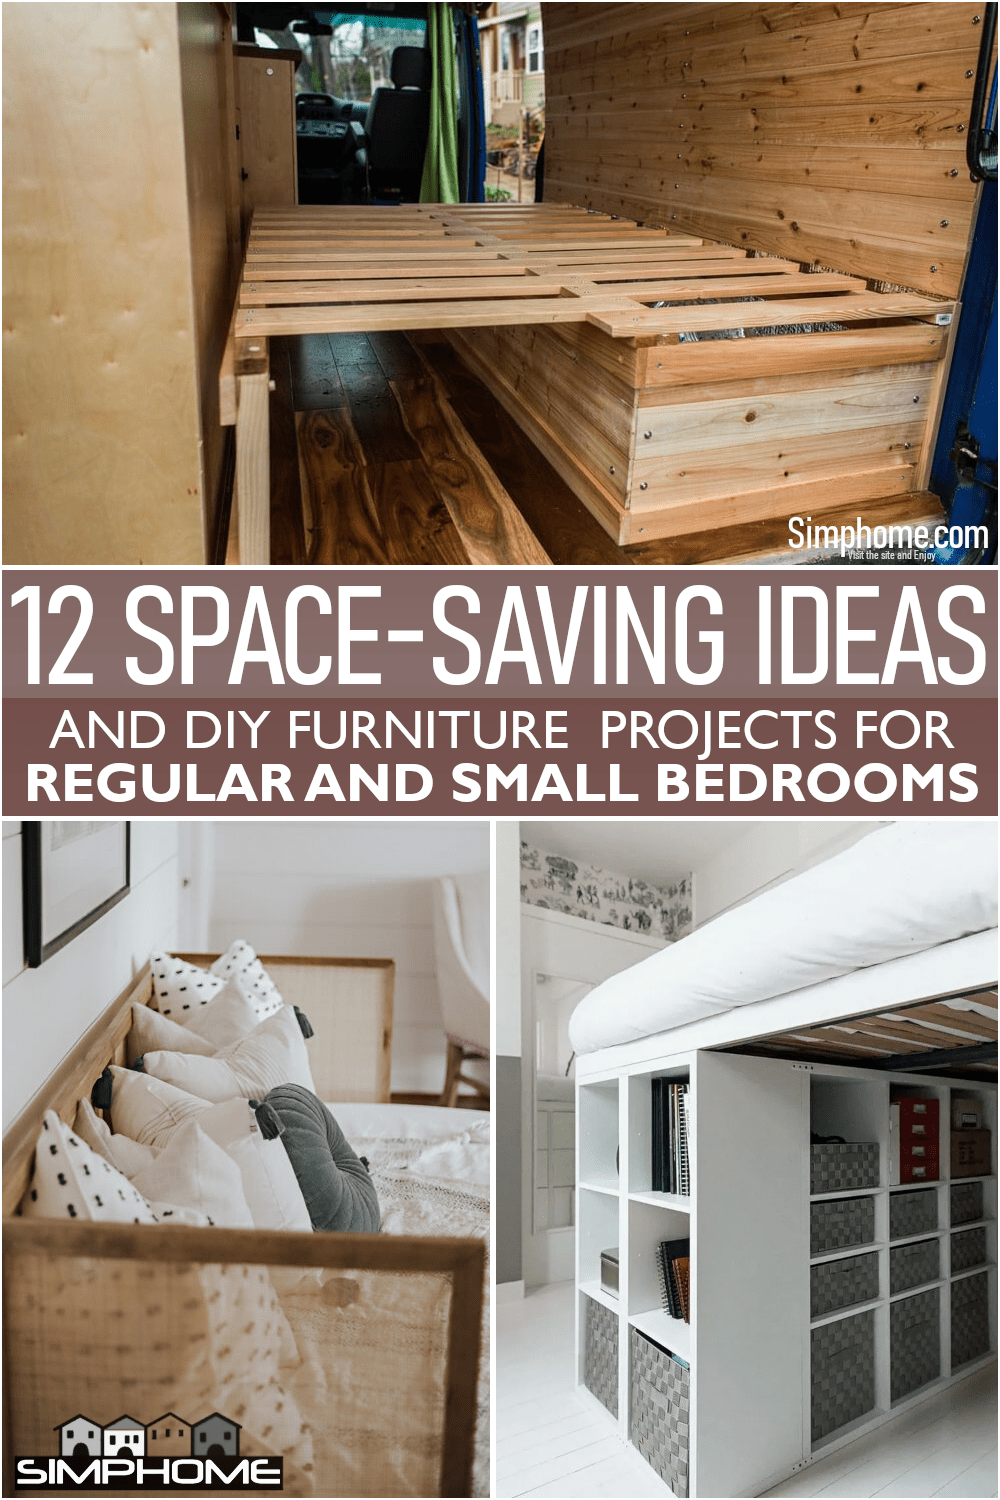 12 Space Saving Furniture For Bedroom Ideas via Simphome.comFeatured